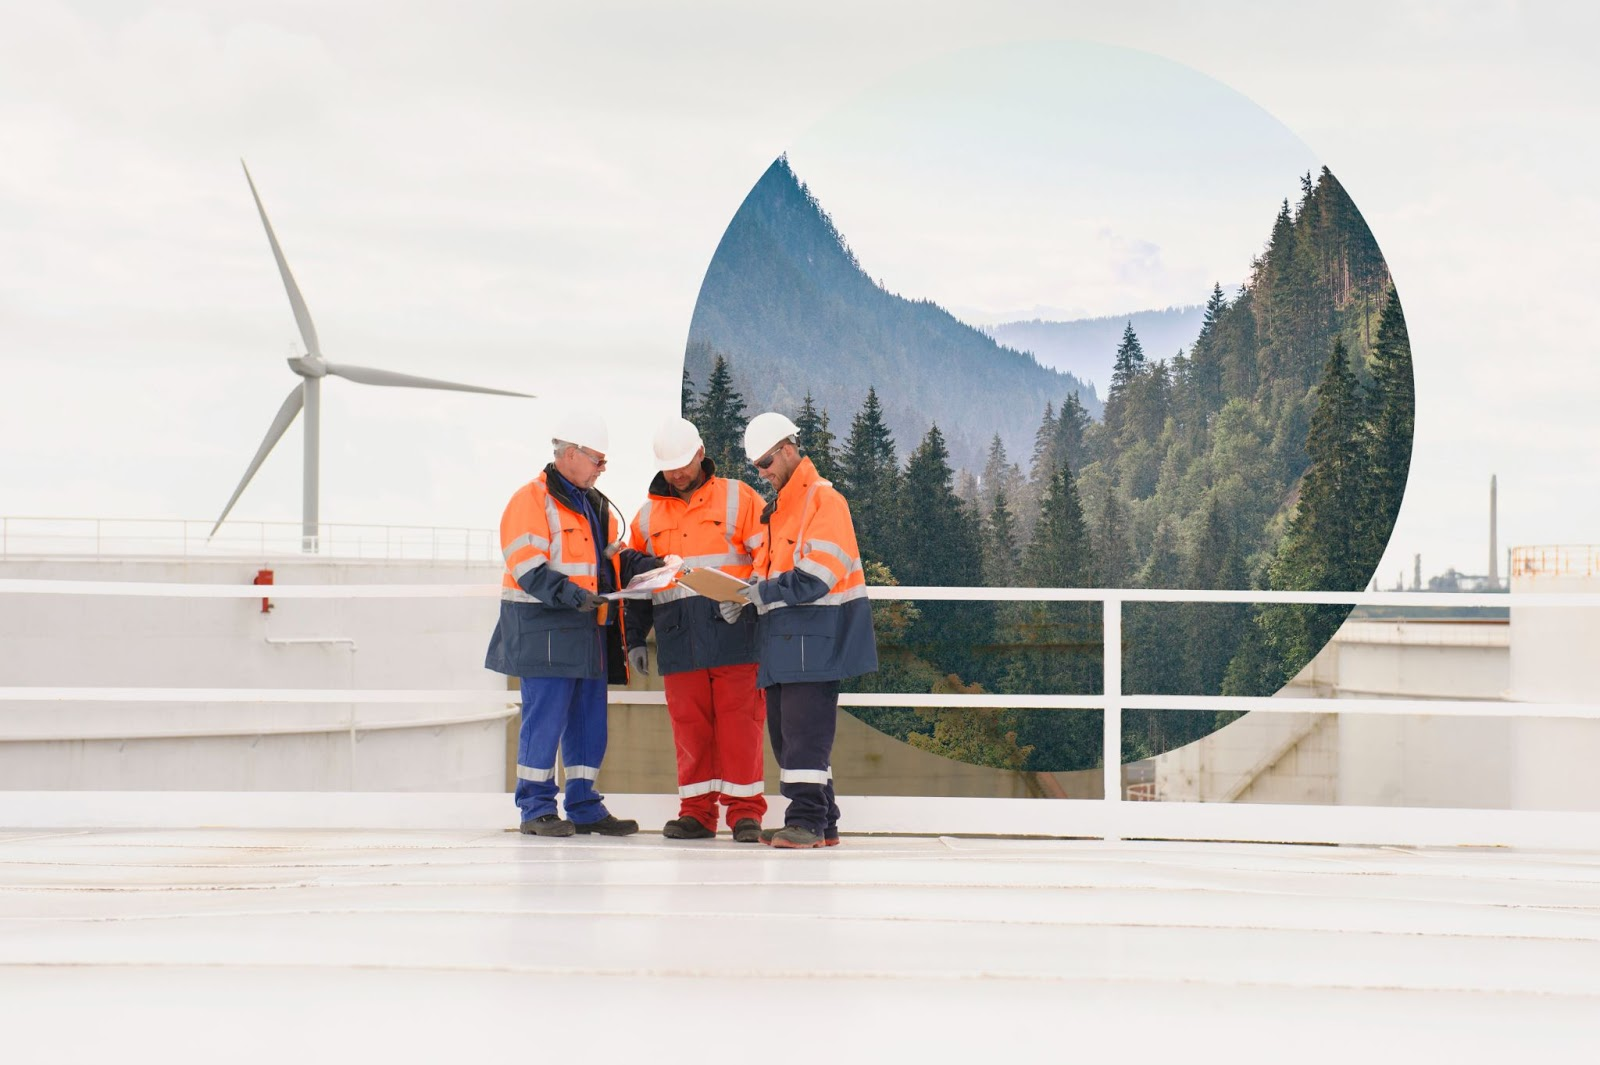 Composite image of workers in front of a wind turbine. Imbedded within this image is a circular photo showing a mountain scene